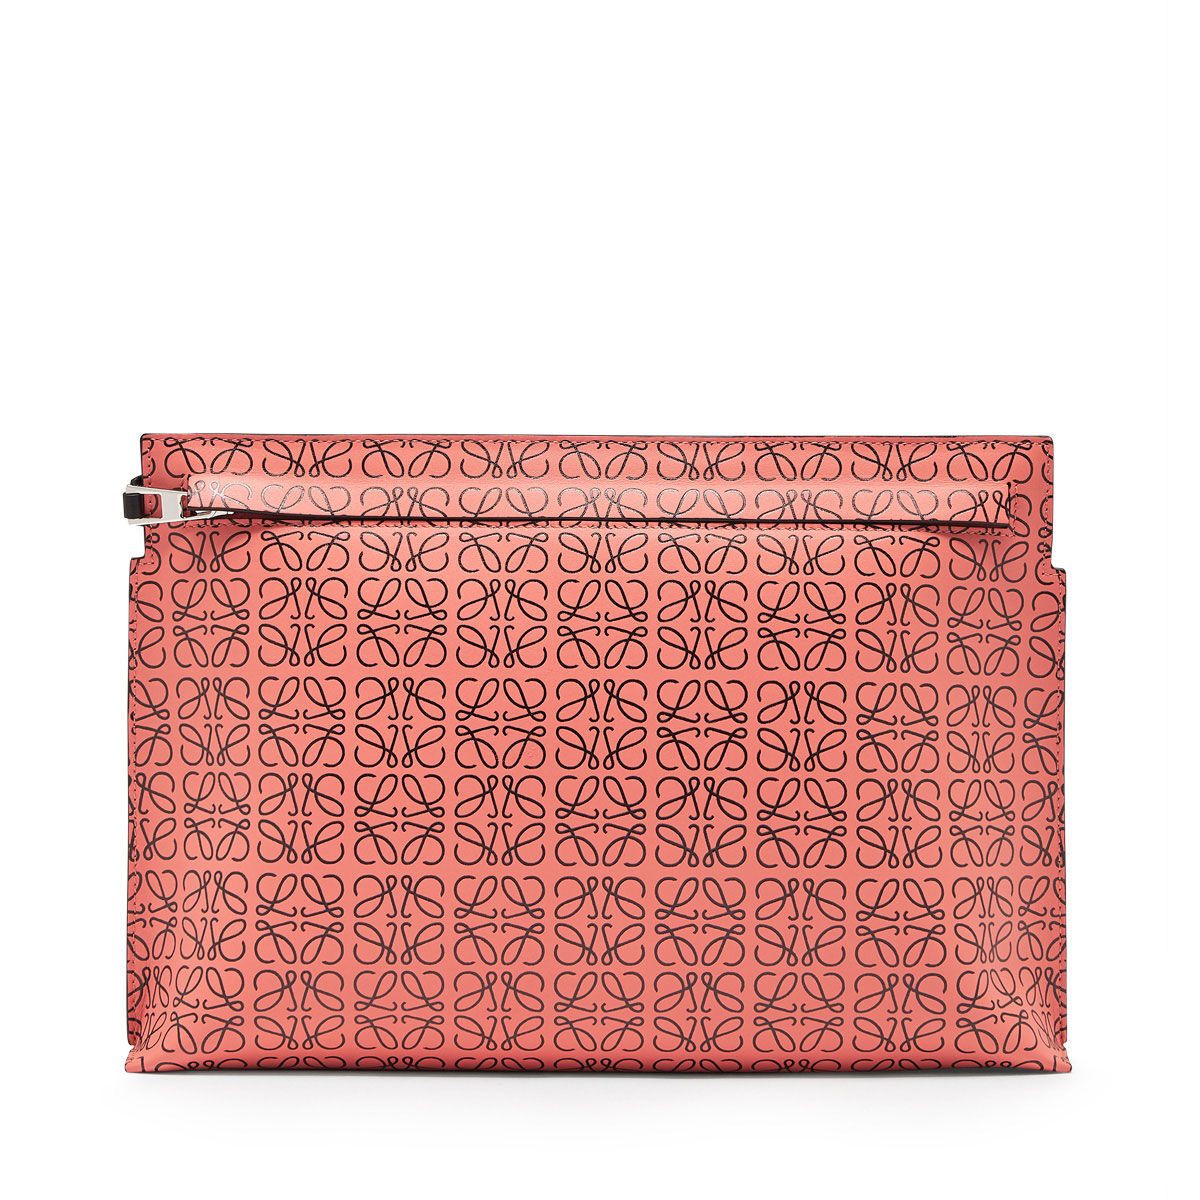 LOEWE T Pouch Repeat Pink Tulip/Black all